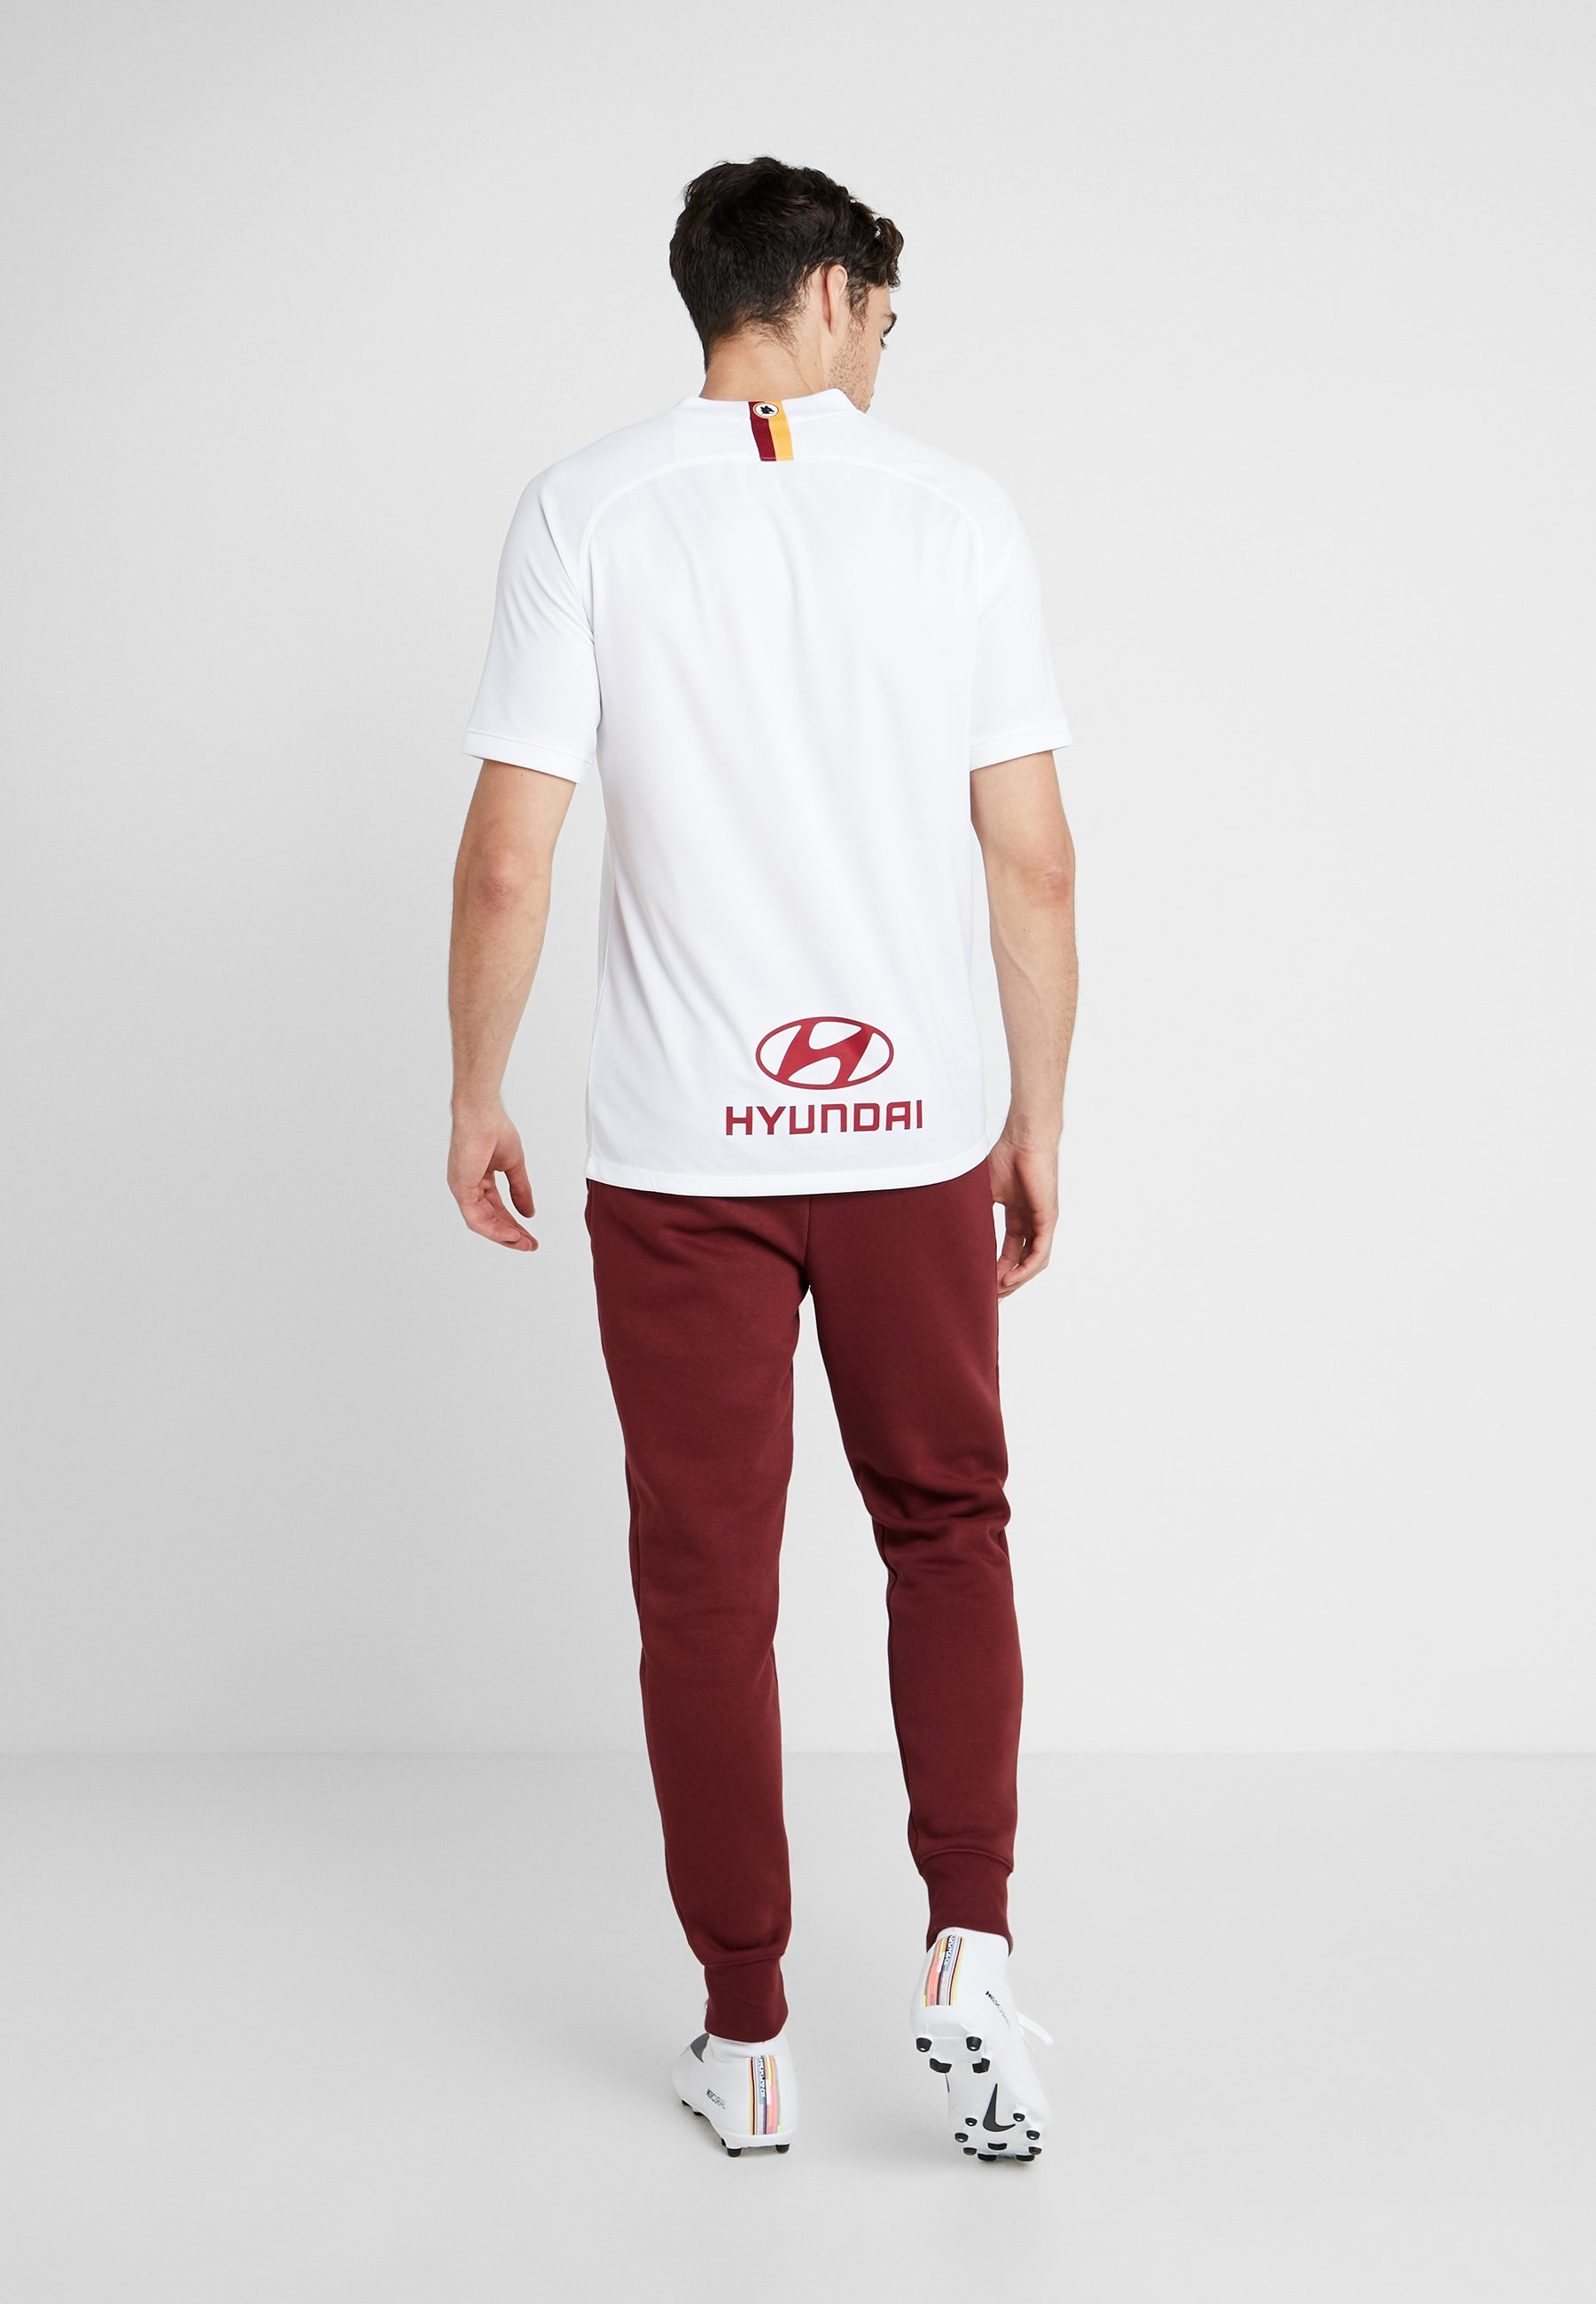 Performance Rom Nike Cream light Supporter Dark PantArticle De Team As Red gIf7byvY6m